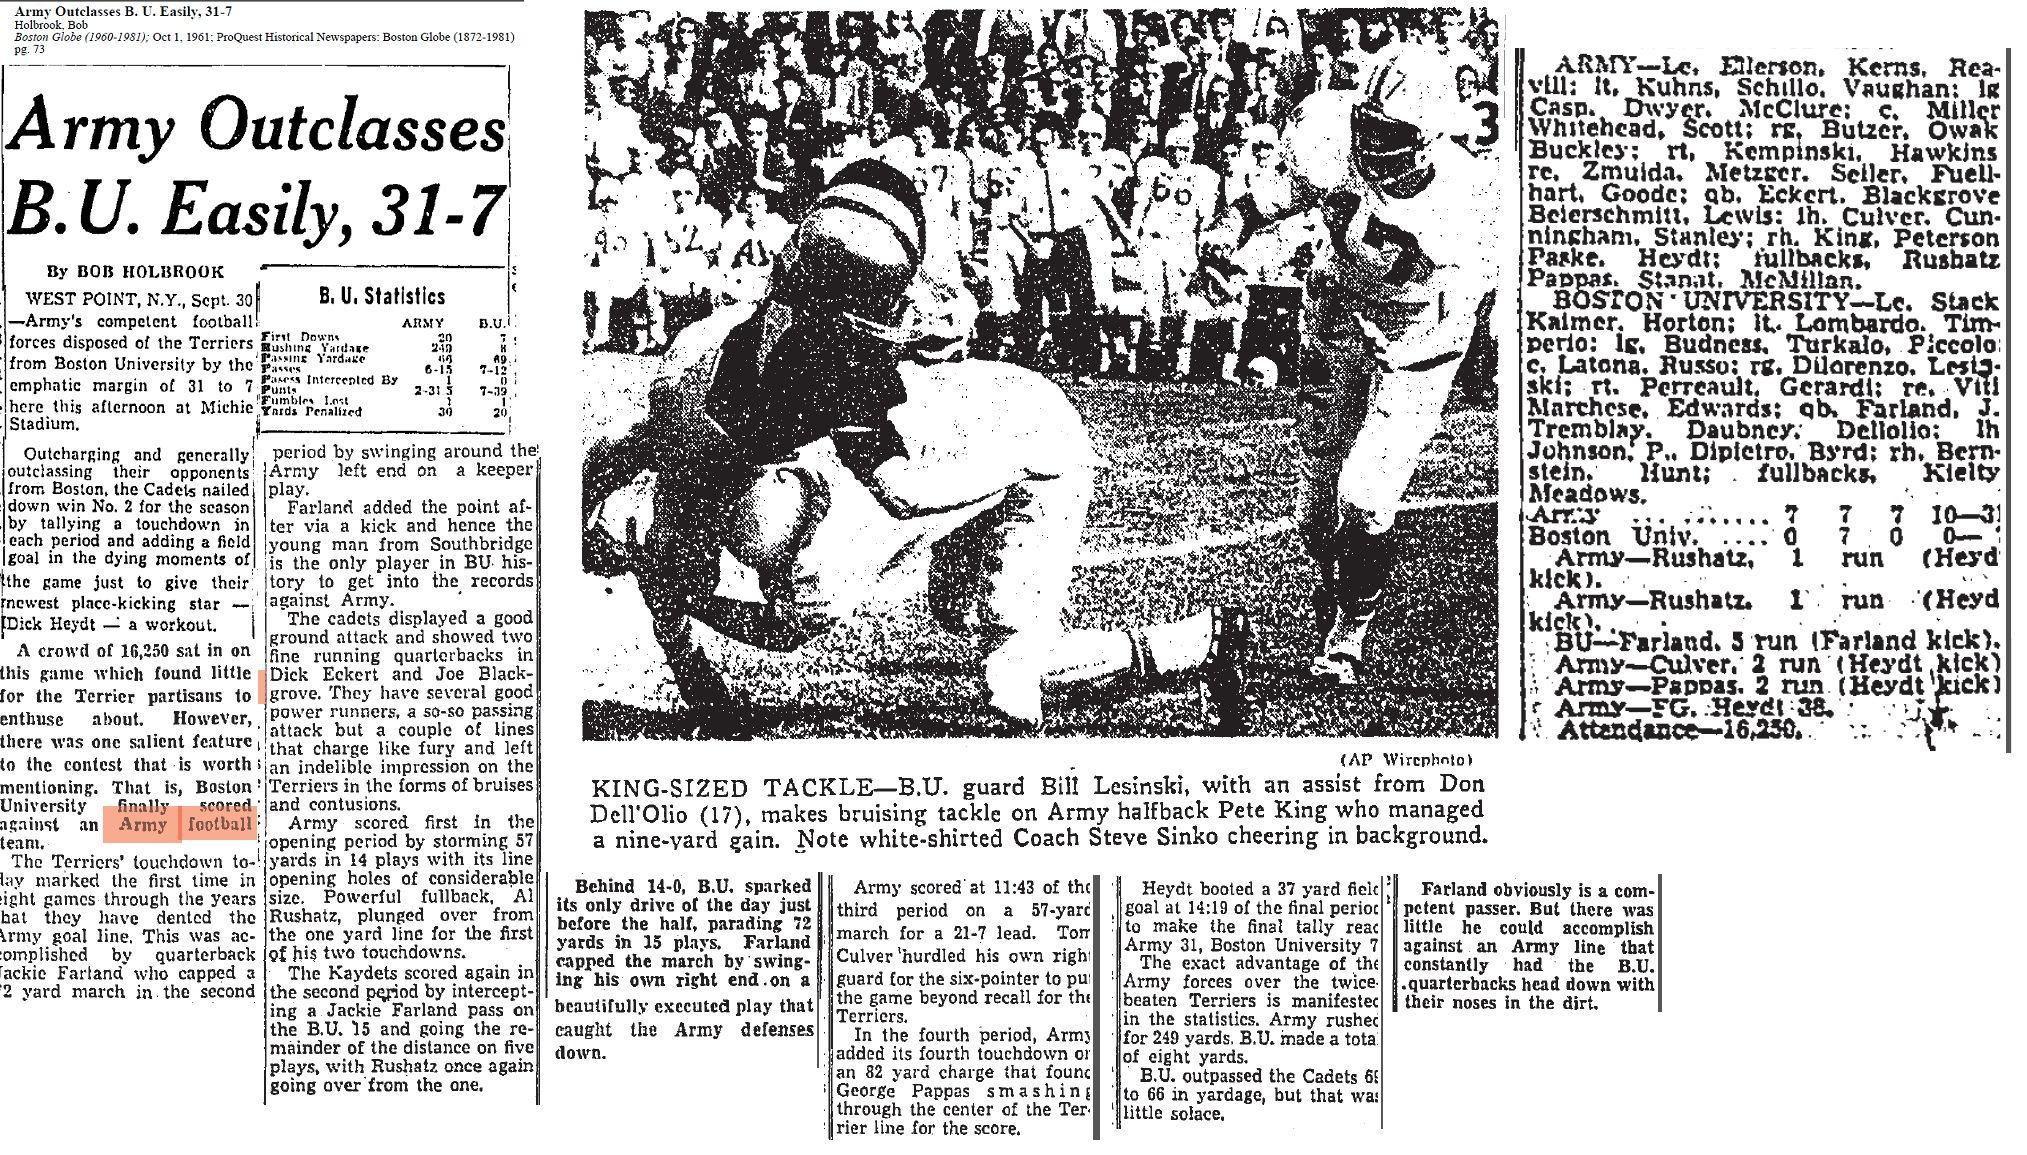 ArmyFB_1961_vsBU_BostonGlobe_Oct11961